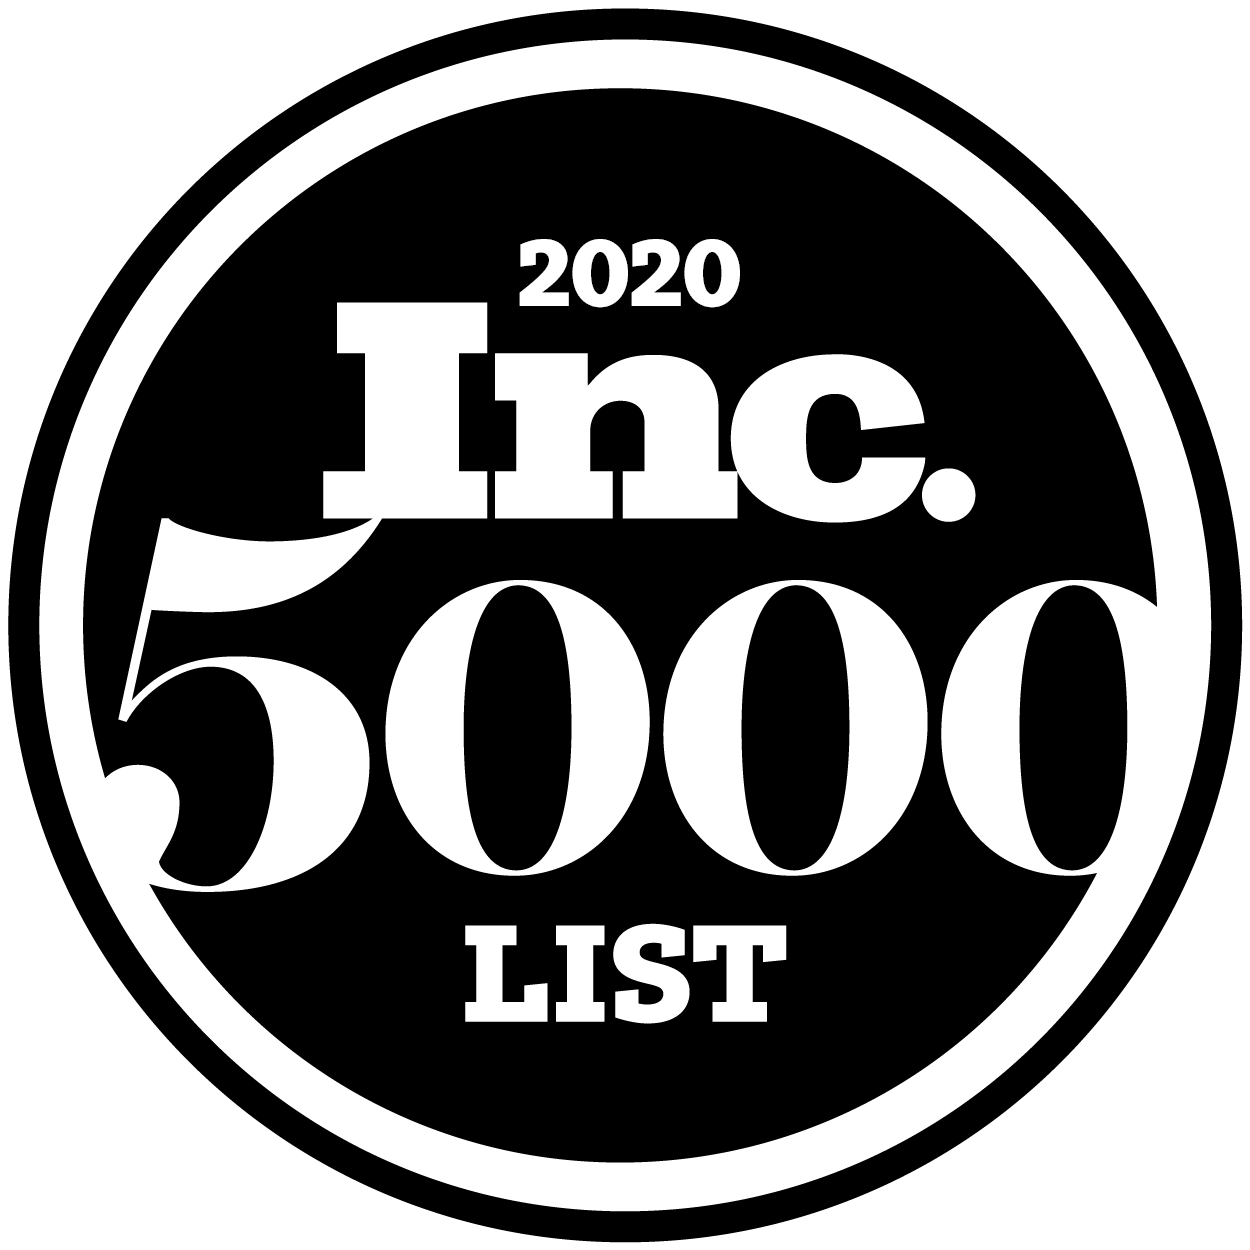 a black circle loco for the 2020 Inc. 5000 List. It has Inc. 5000 List in white on the inner circle and a black circle framing the logo